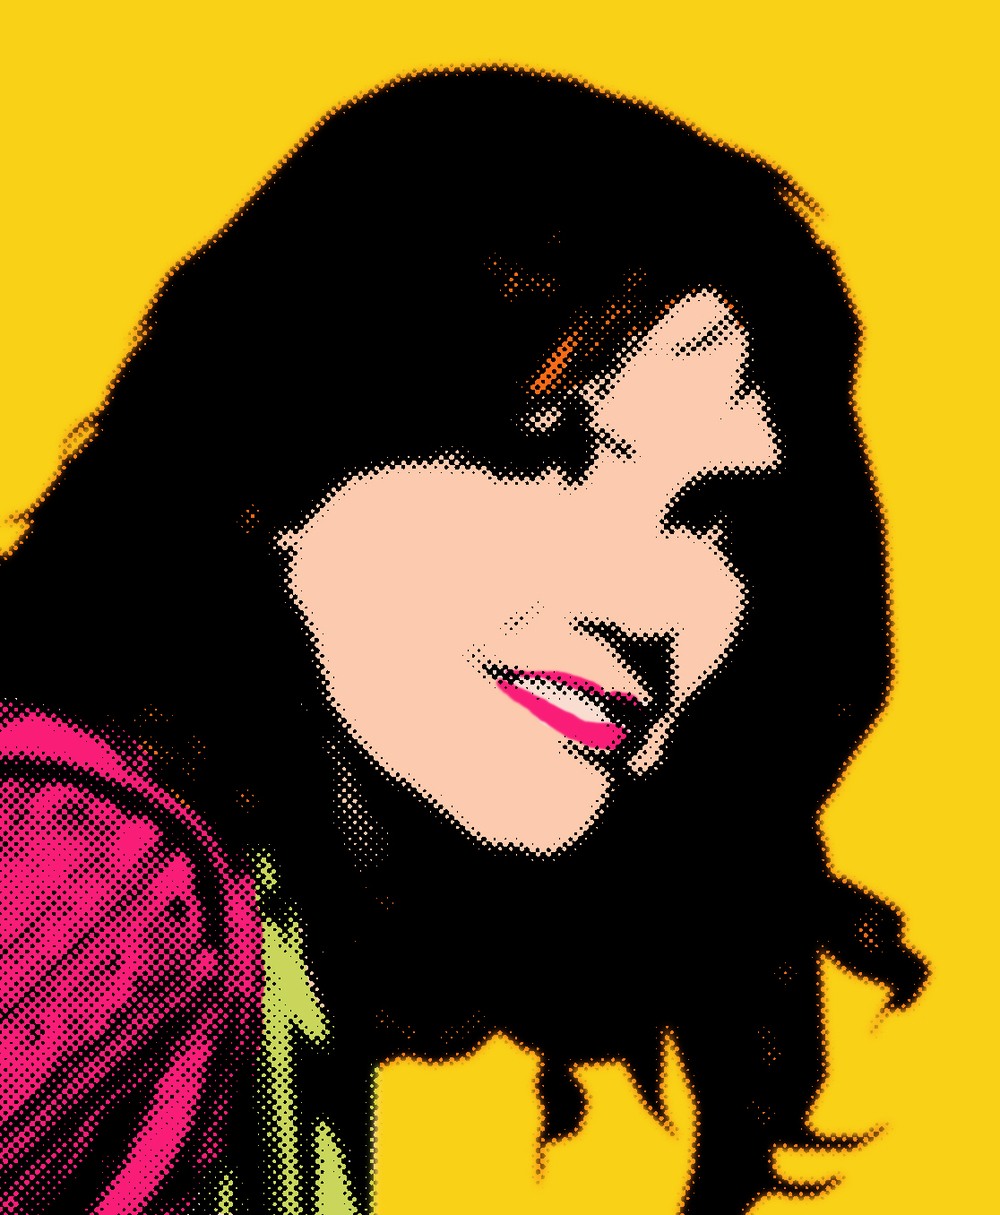 Pop art portrait of Charlotte Easterling. She has dark hair and is smiling into the camera. She's wearing a pink sweater and green t-shirt.